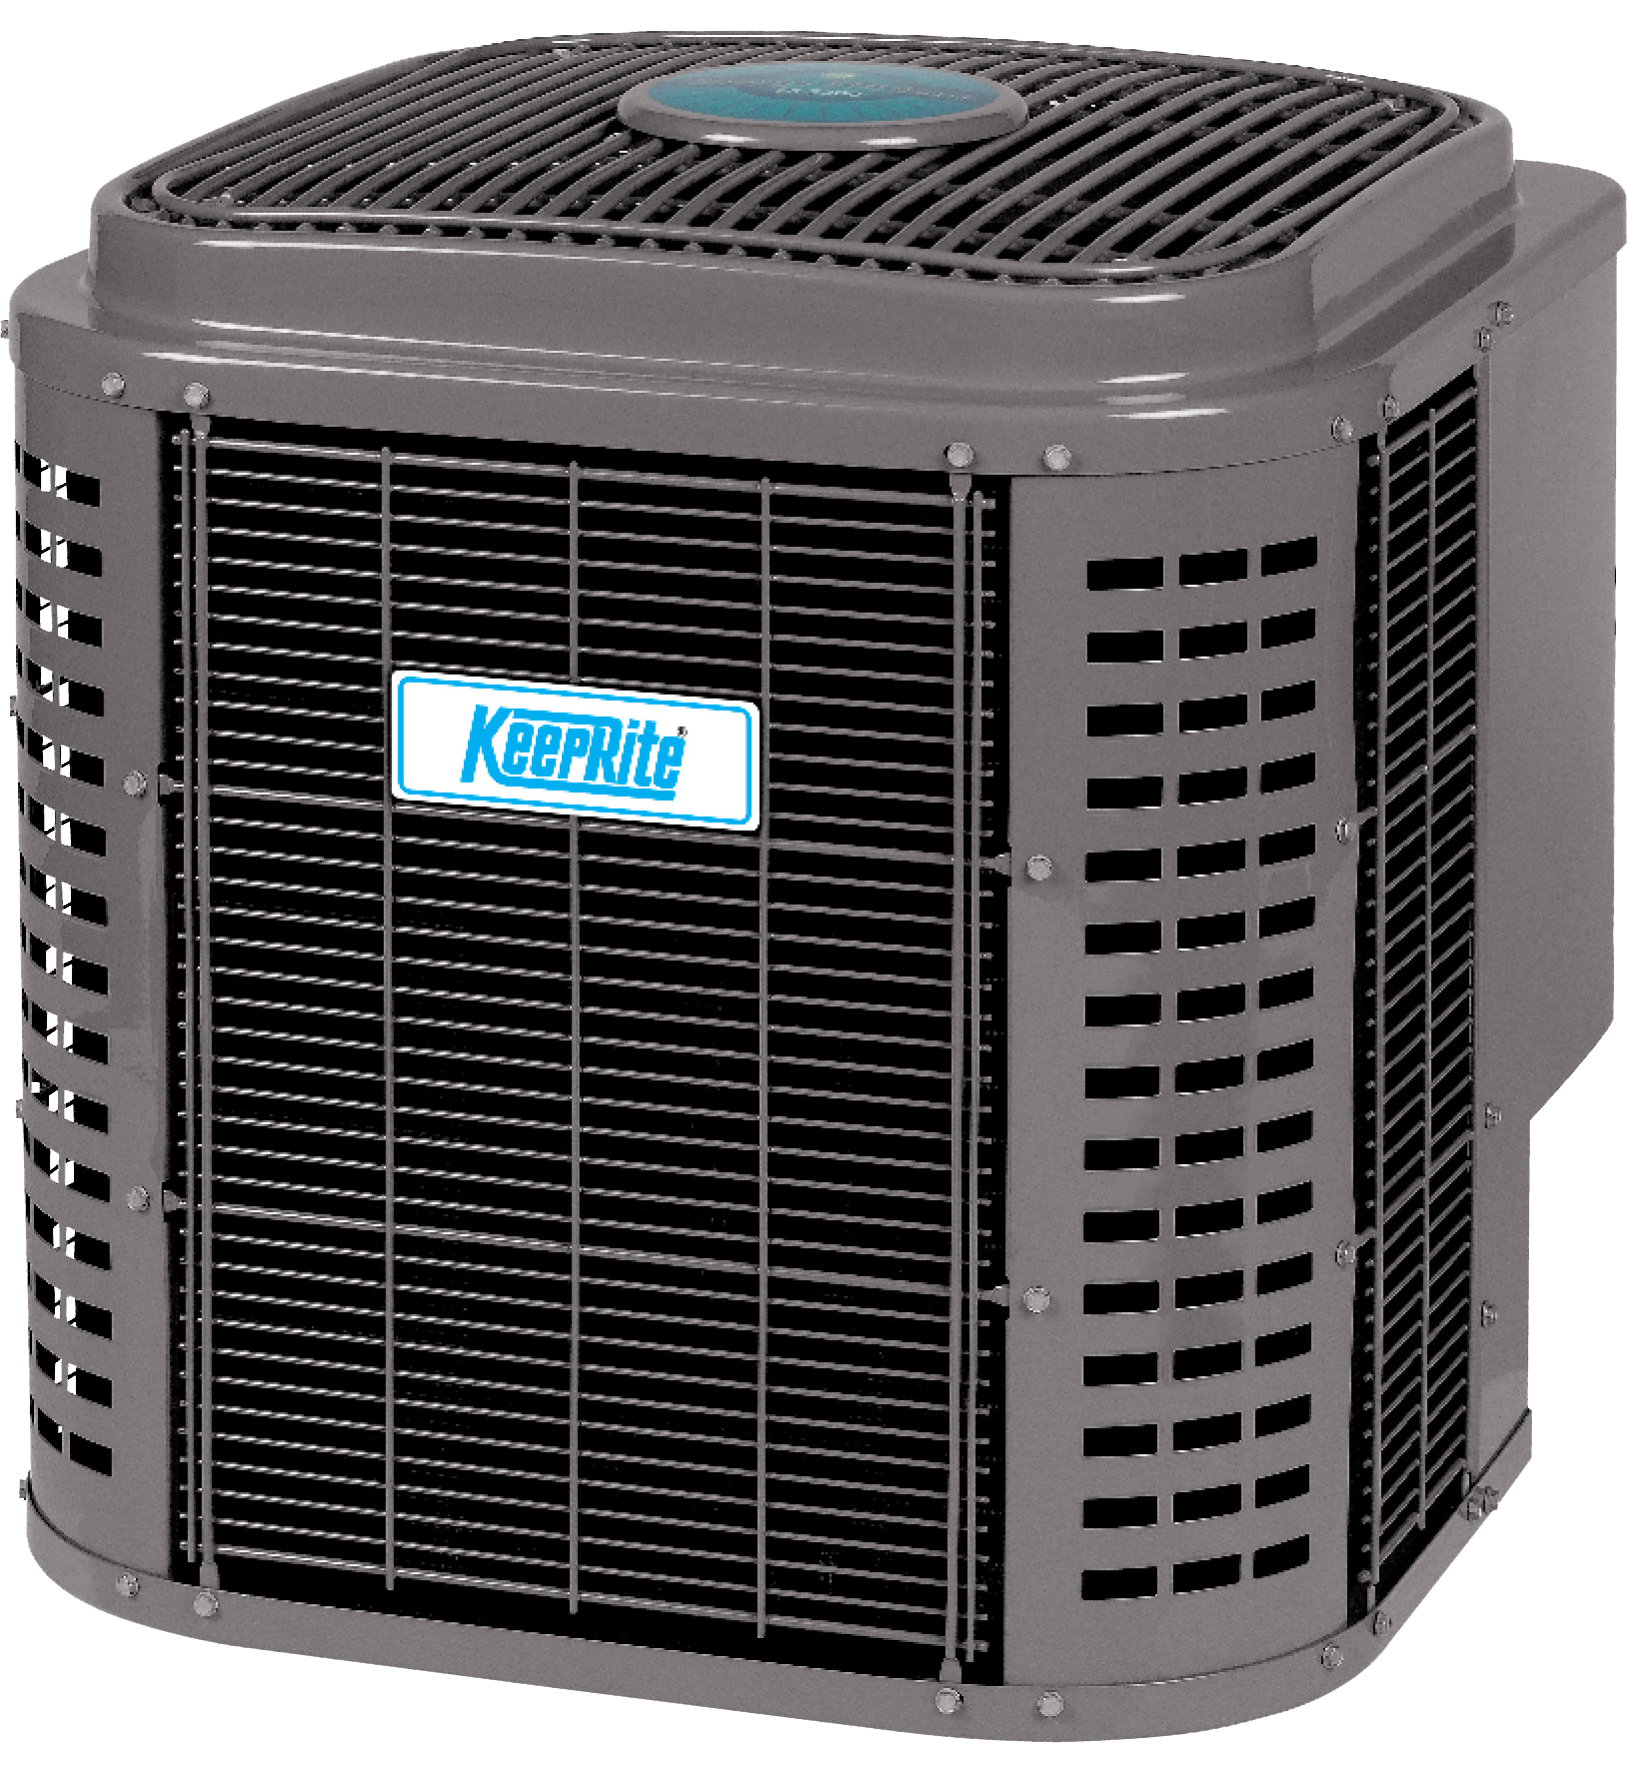 #008FCC Keeprite Air Conditioner's Air Pro Heating And Air  Most Effective 12235 High Efficiency Furnace And Air Conditioner pictures with 1627x1772 px on helpvideos.info - Air Conditioners, Air Coolers and more